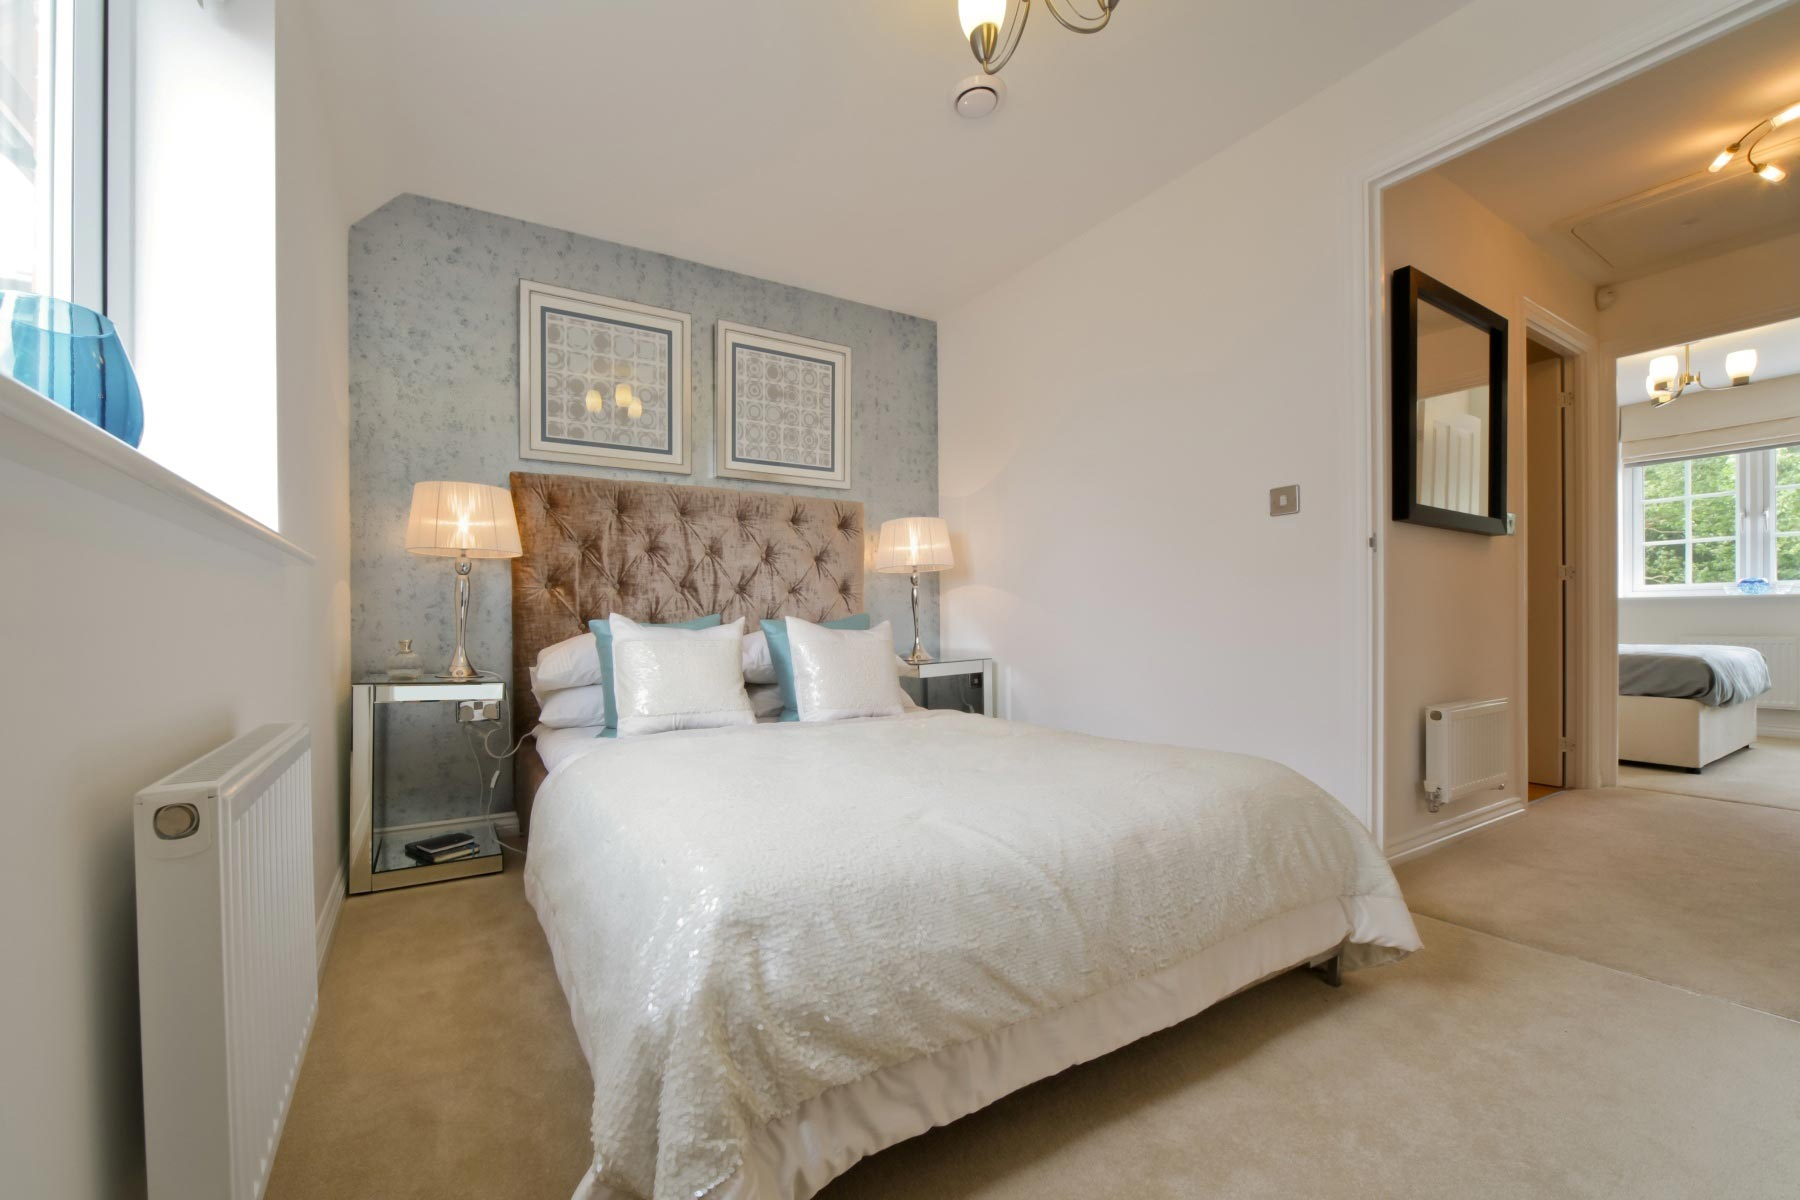 Taylor Wimpey - Typical second bedroom